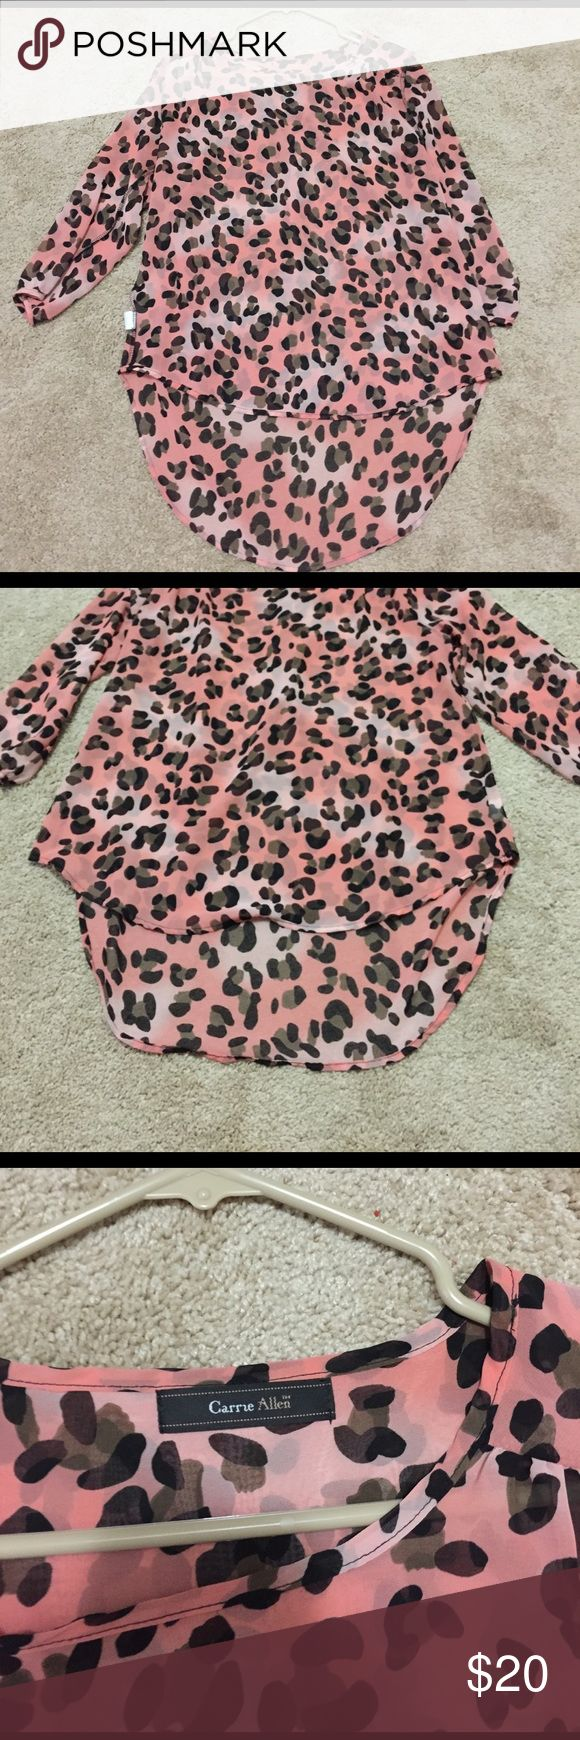 Half-sleeve leopard print shirt Very cute and comfy shirt that has only been worn a couple times! Tops Blouses